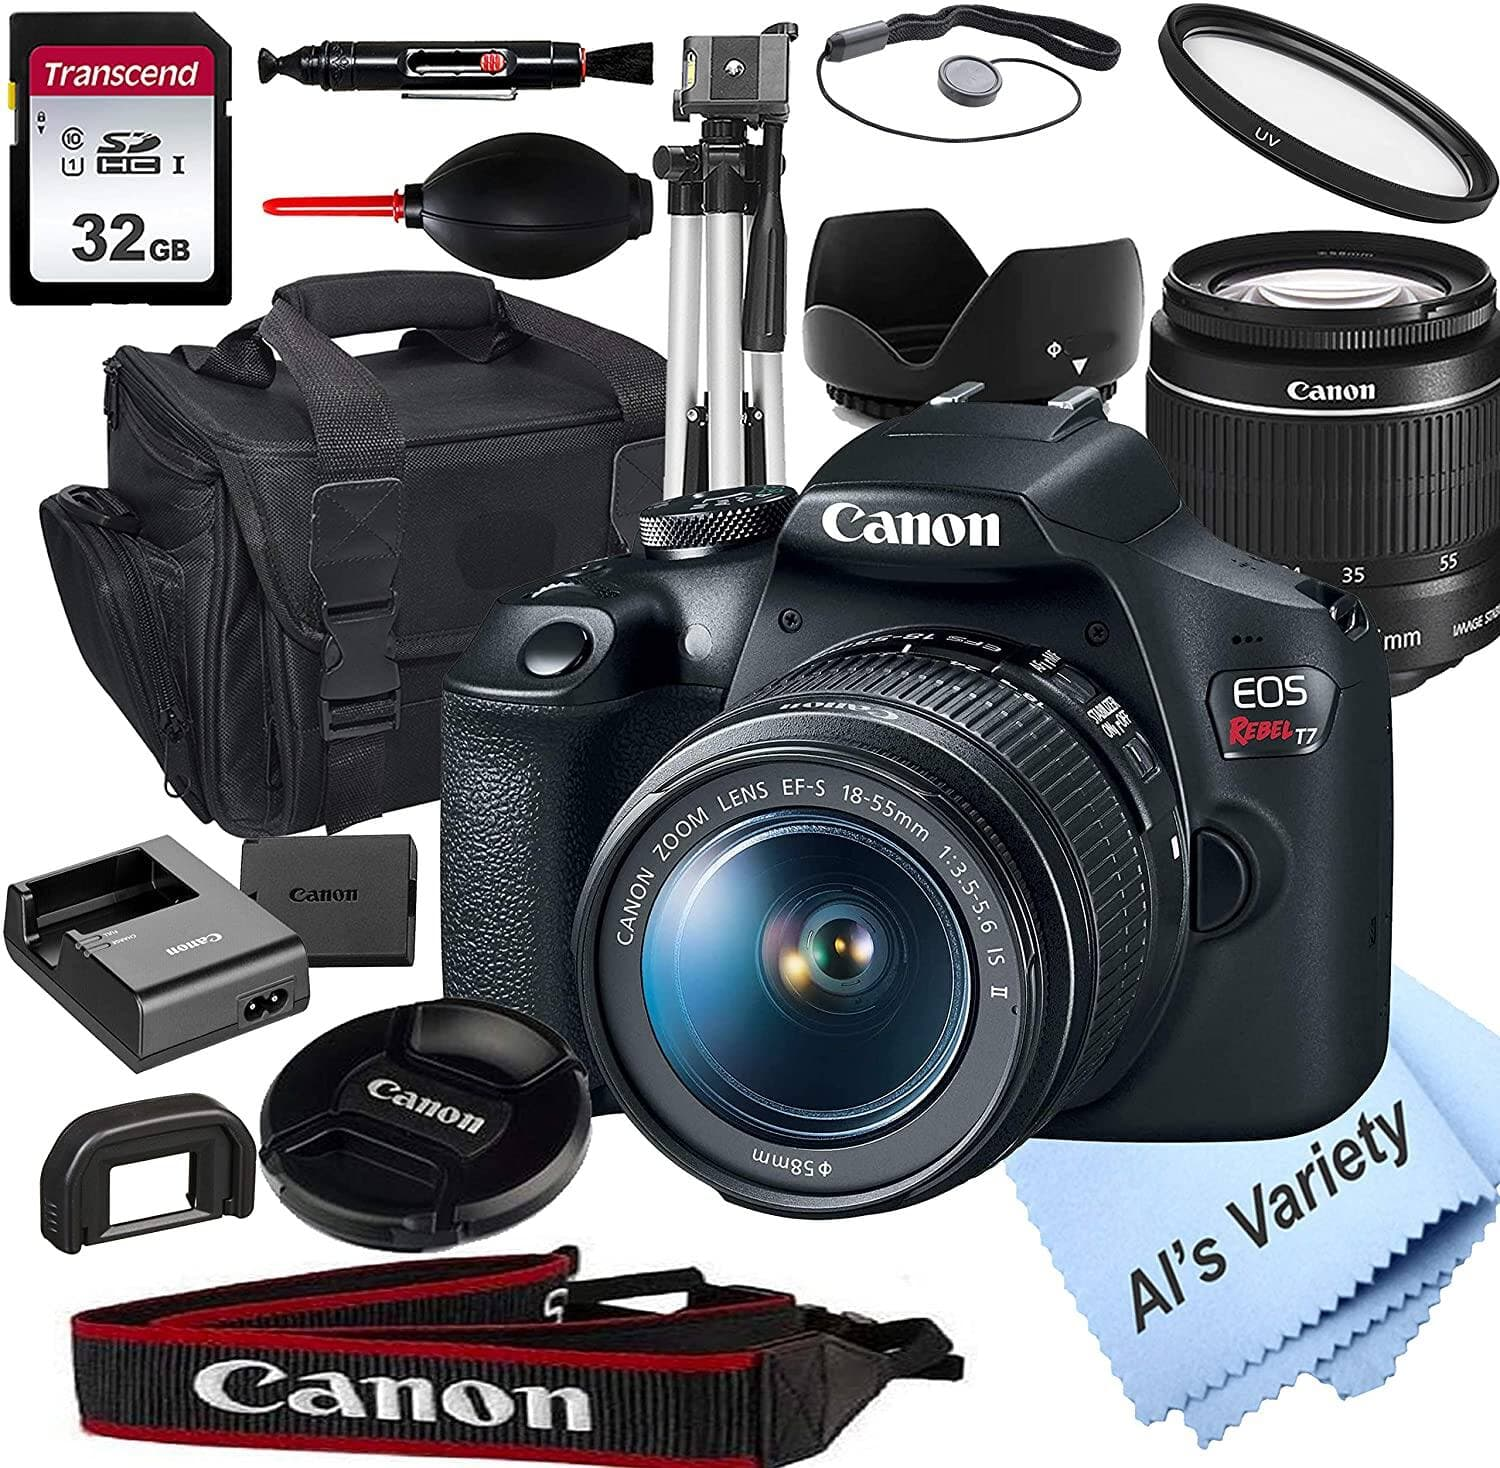 Canon EOS Rebel T7 DSLR Camera with 18-55mm f/3.5-5.6 is Zoom Lens + 32GB Card, Tripod, Case, and More (18pc Bundle) $379 + Free Shipping